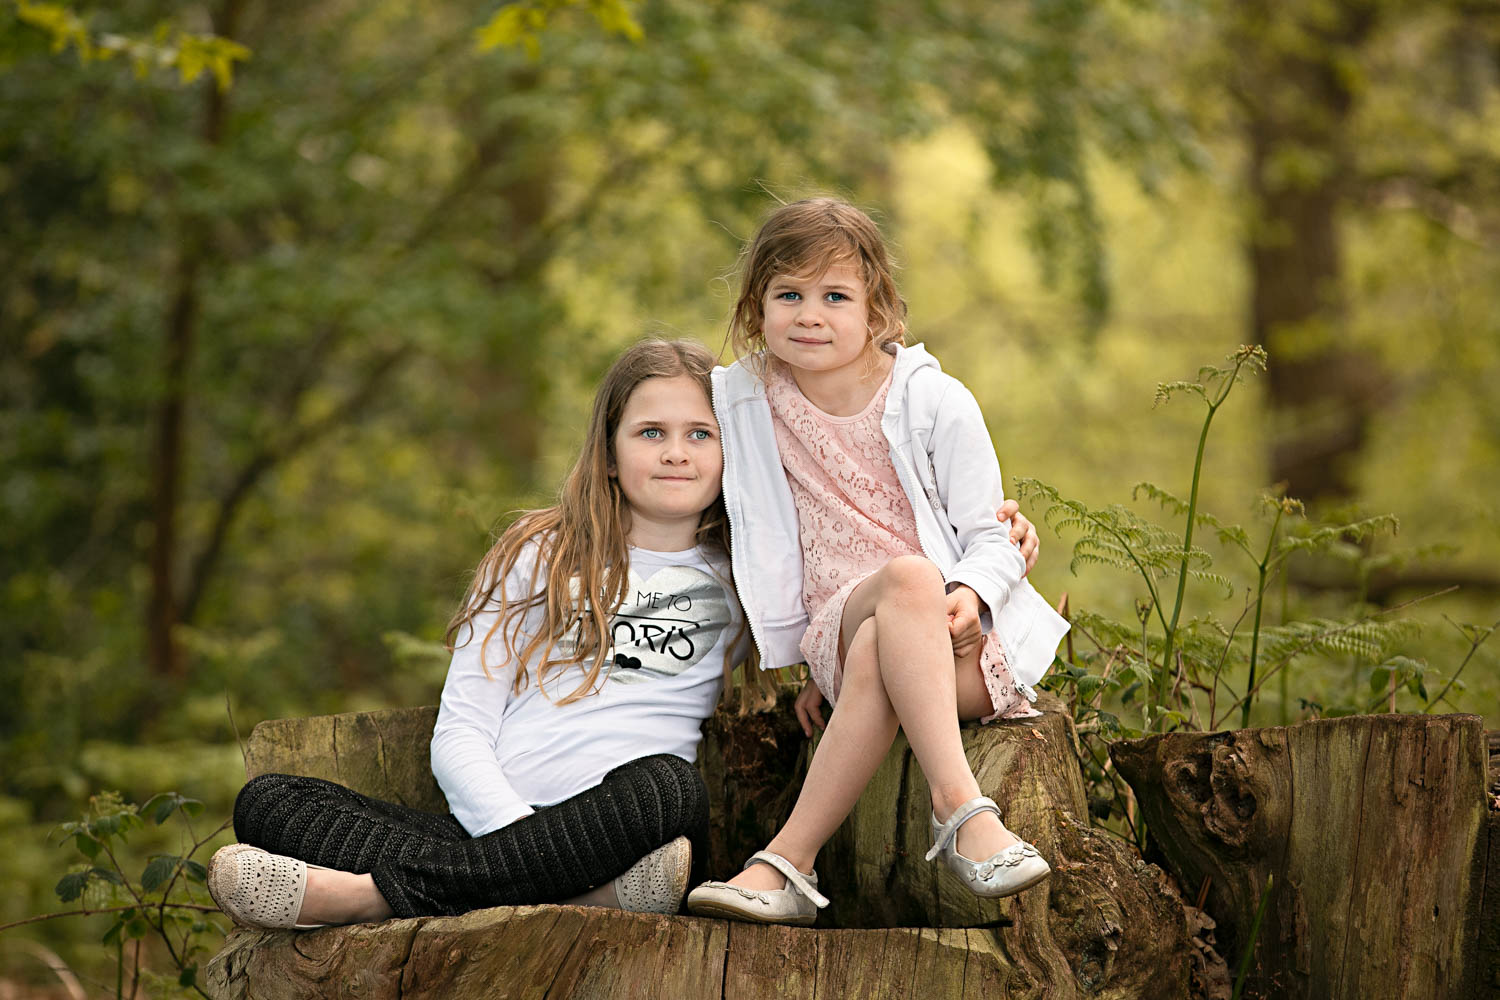 Sisters posing for a family portait.